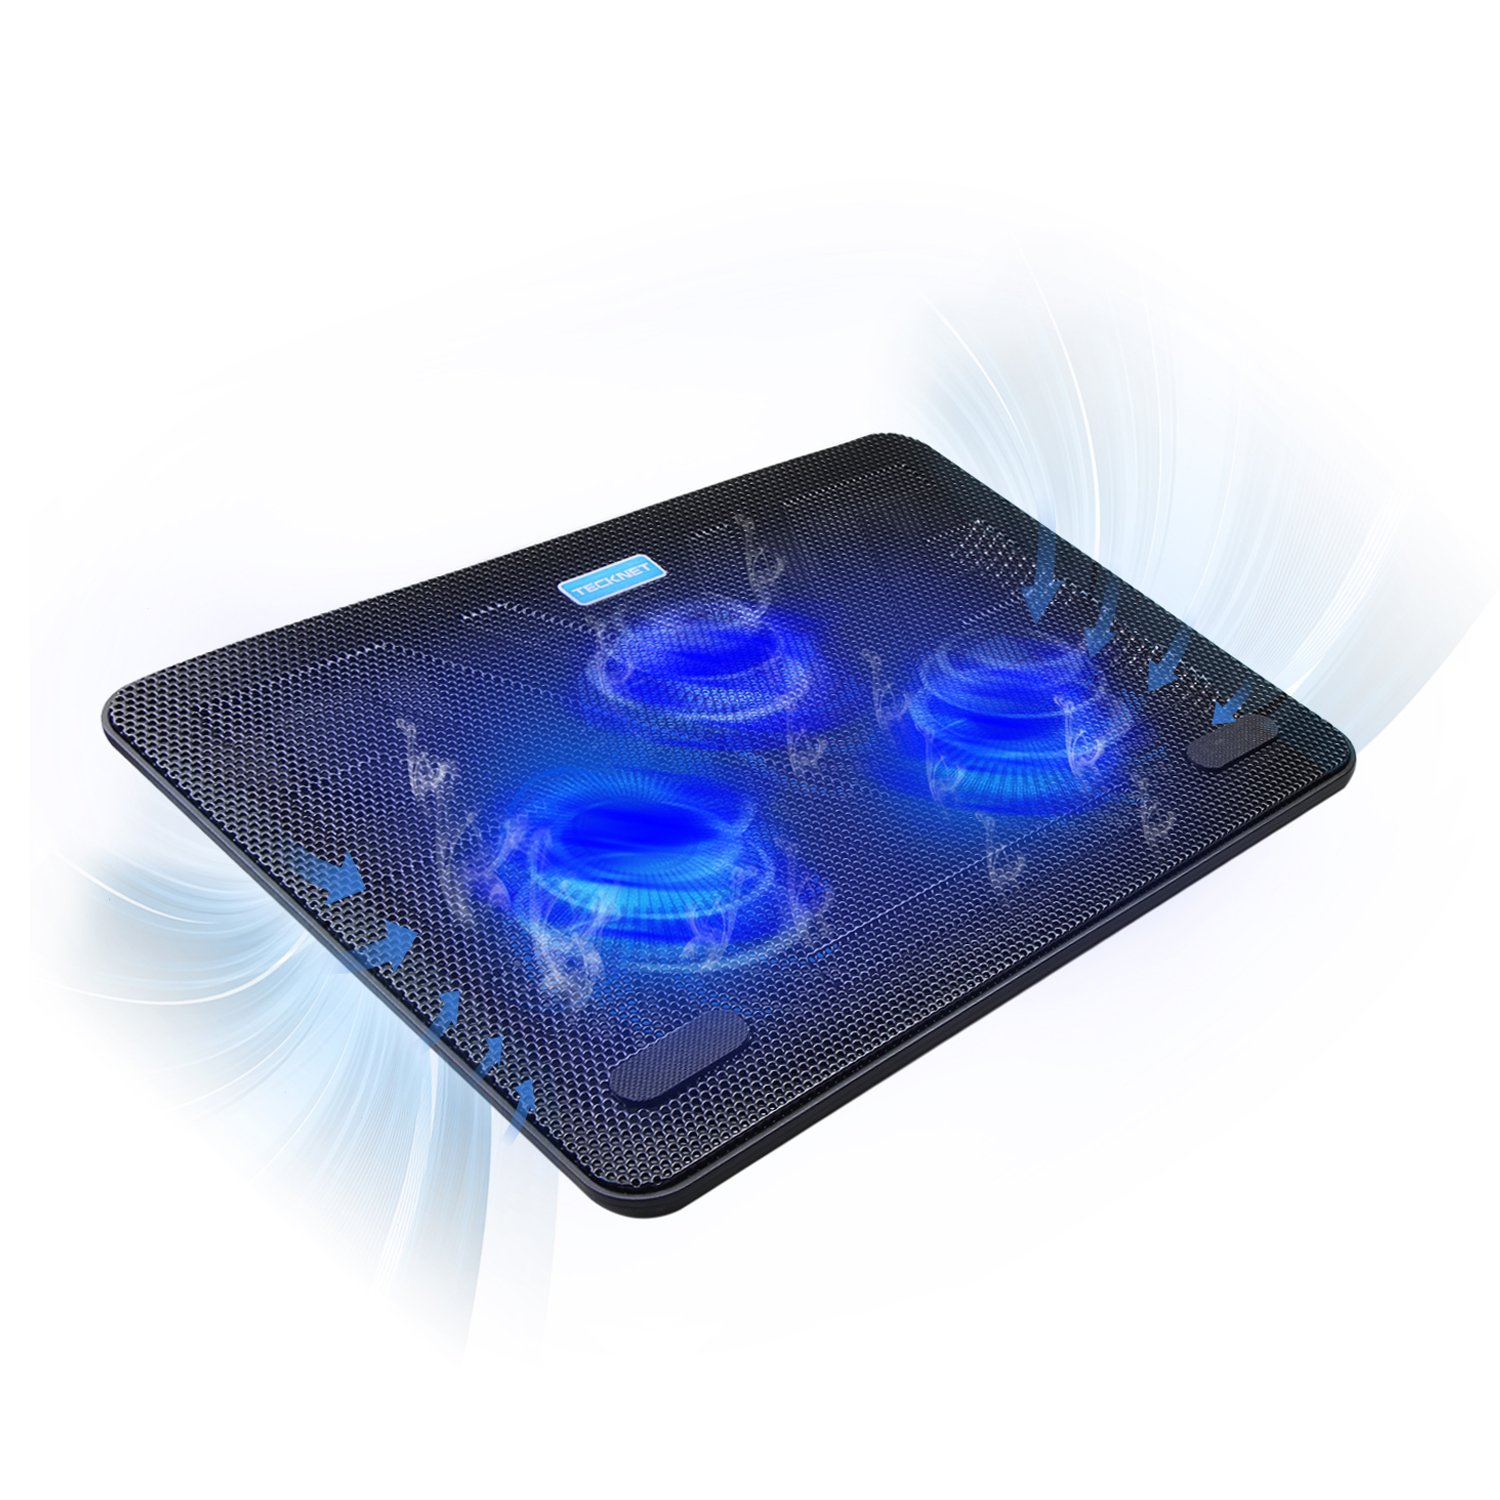 """TECKNET 12""""-17"""" Quiet Laptop Cooler Cooling Pad Stand With 3 USB Powered Fans, 1200 RPM, Light Weight & Ultra-Slim Design"""